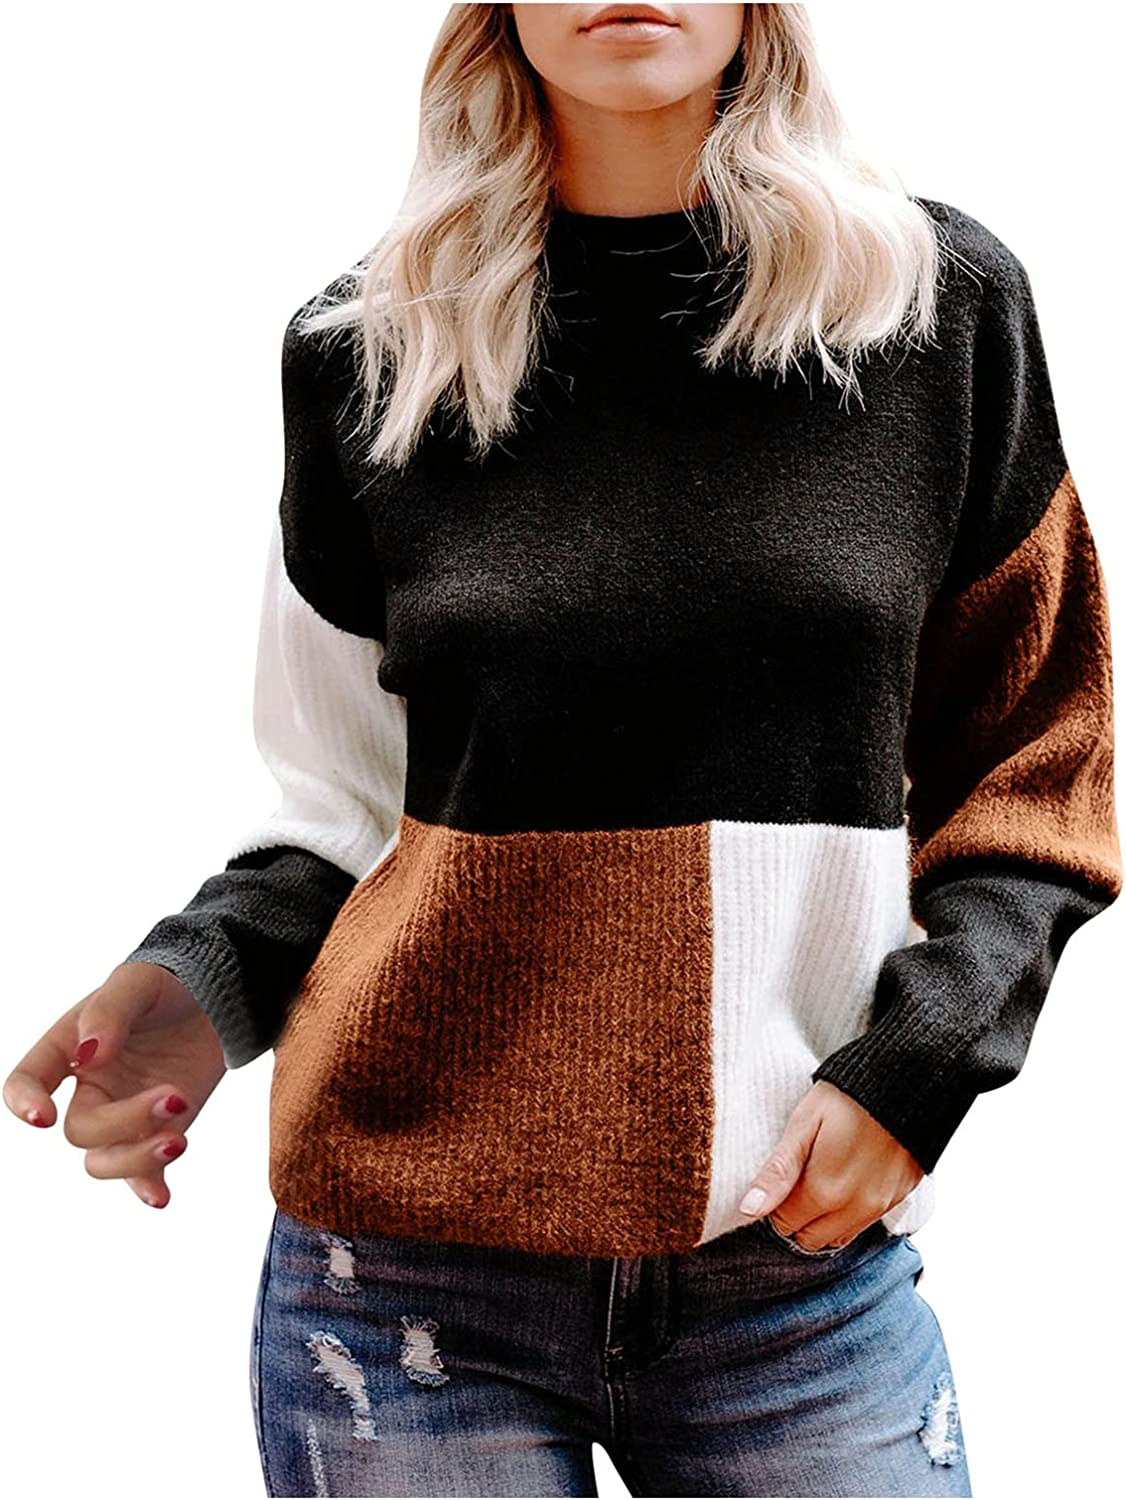 RUIY Women Sweaters for Fall,Winter Sweaters-Oversized Chunky Knit Color Block Batwing Sleeve Pullover Sweater Tops